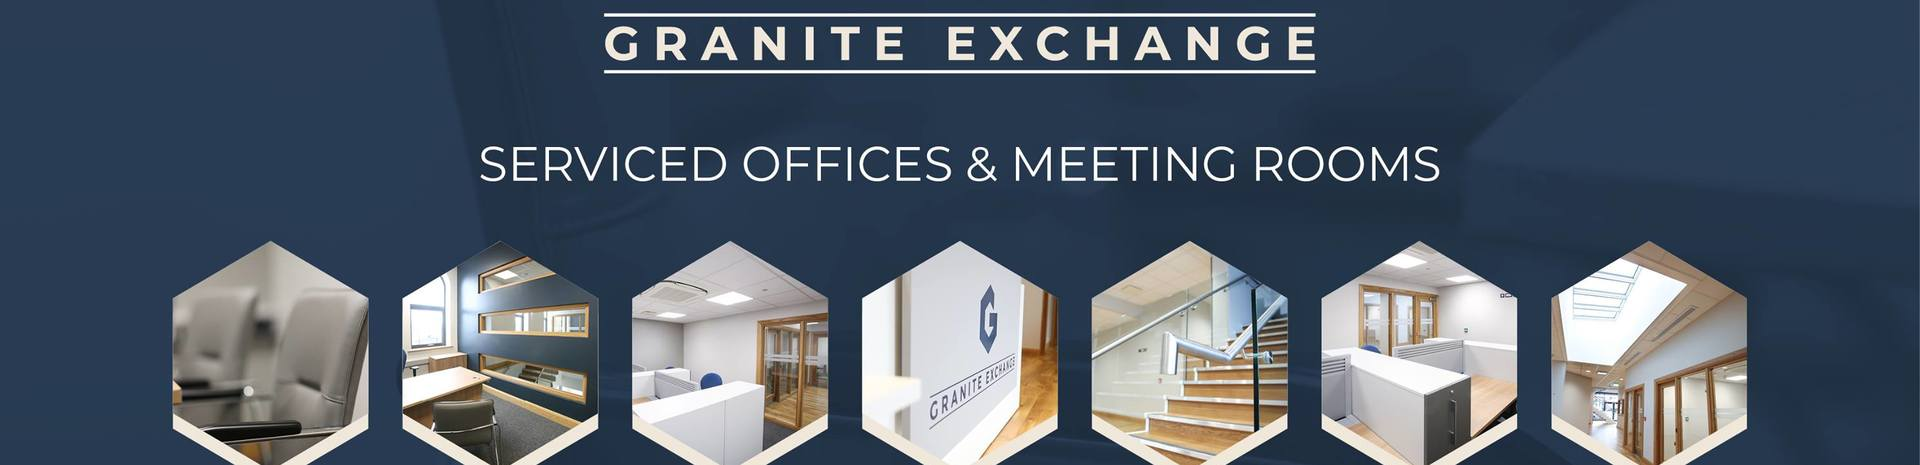 Granite Exchange, Newry - Read Reviews & Book Online